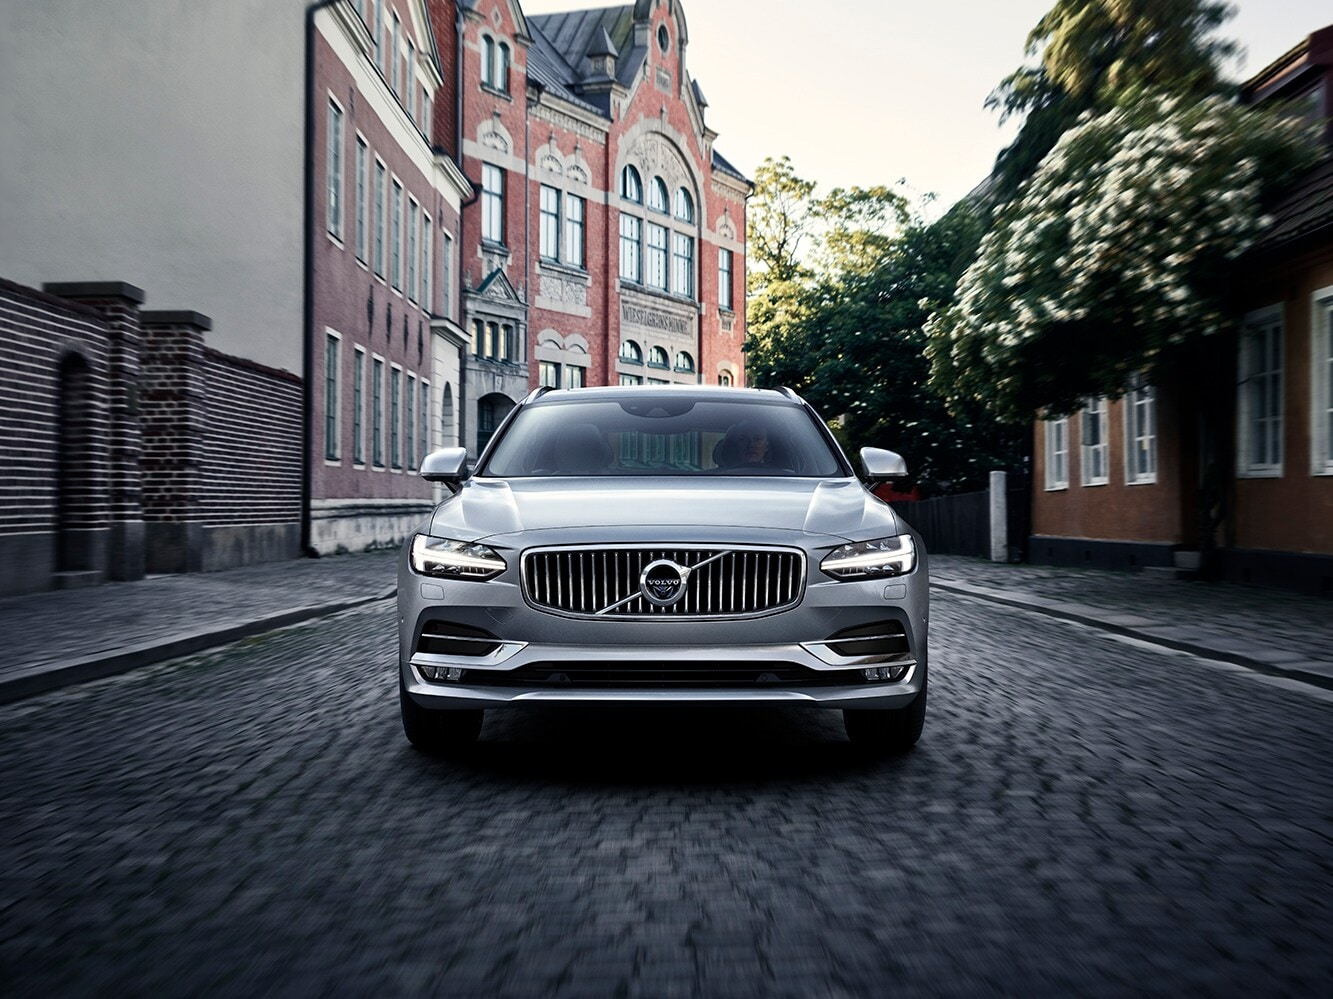 Front view of the Volvo V90 driving down a cobbled road